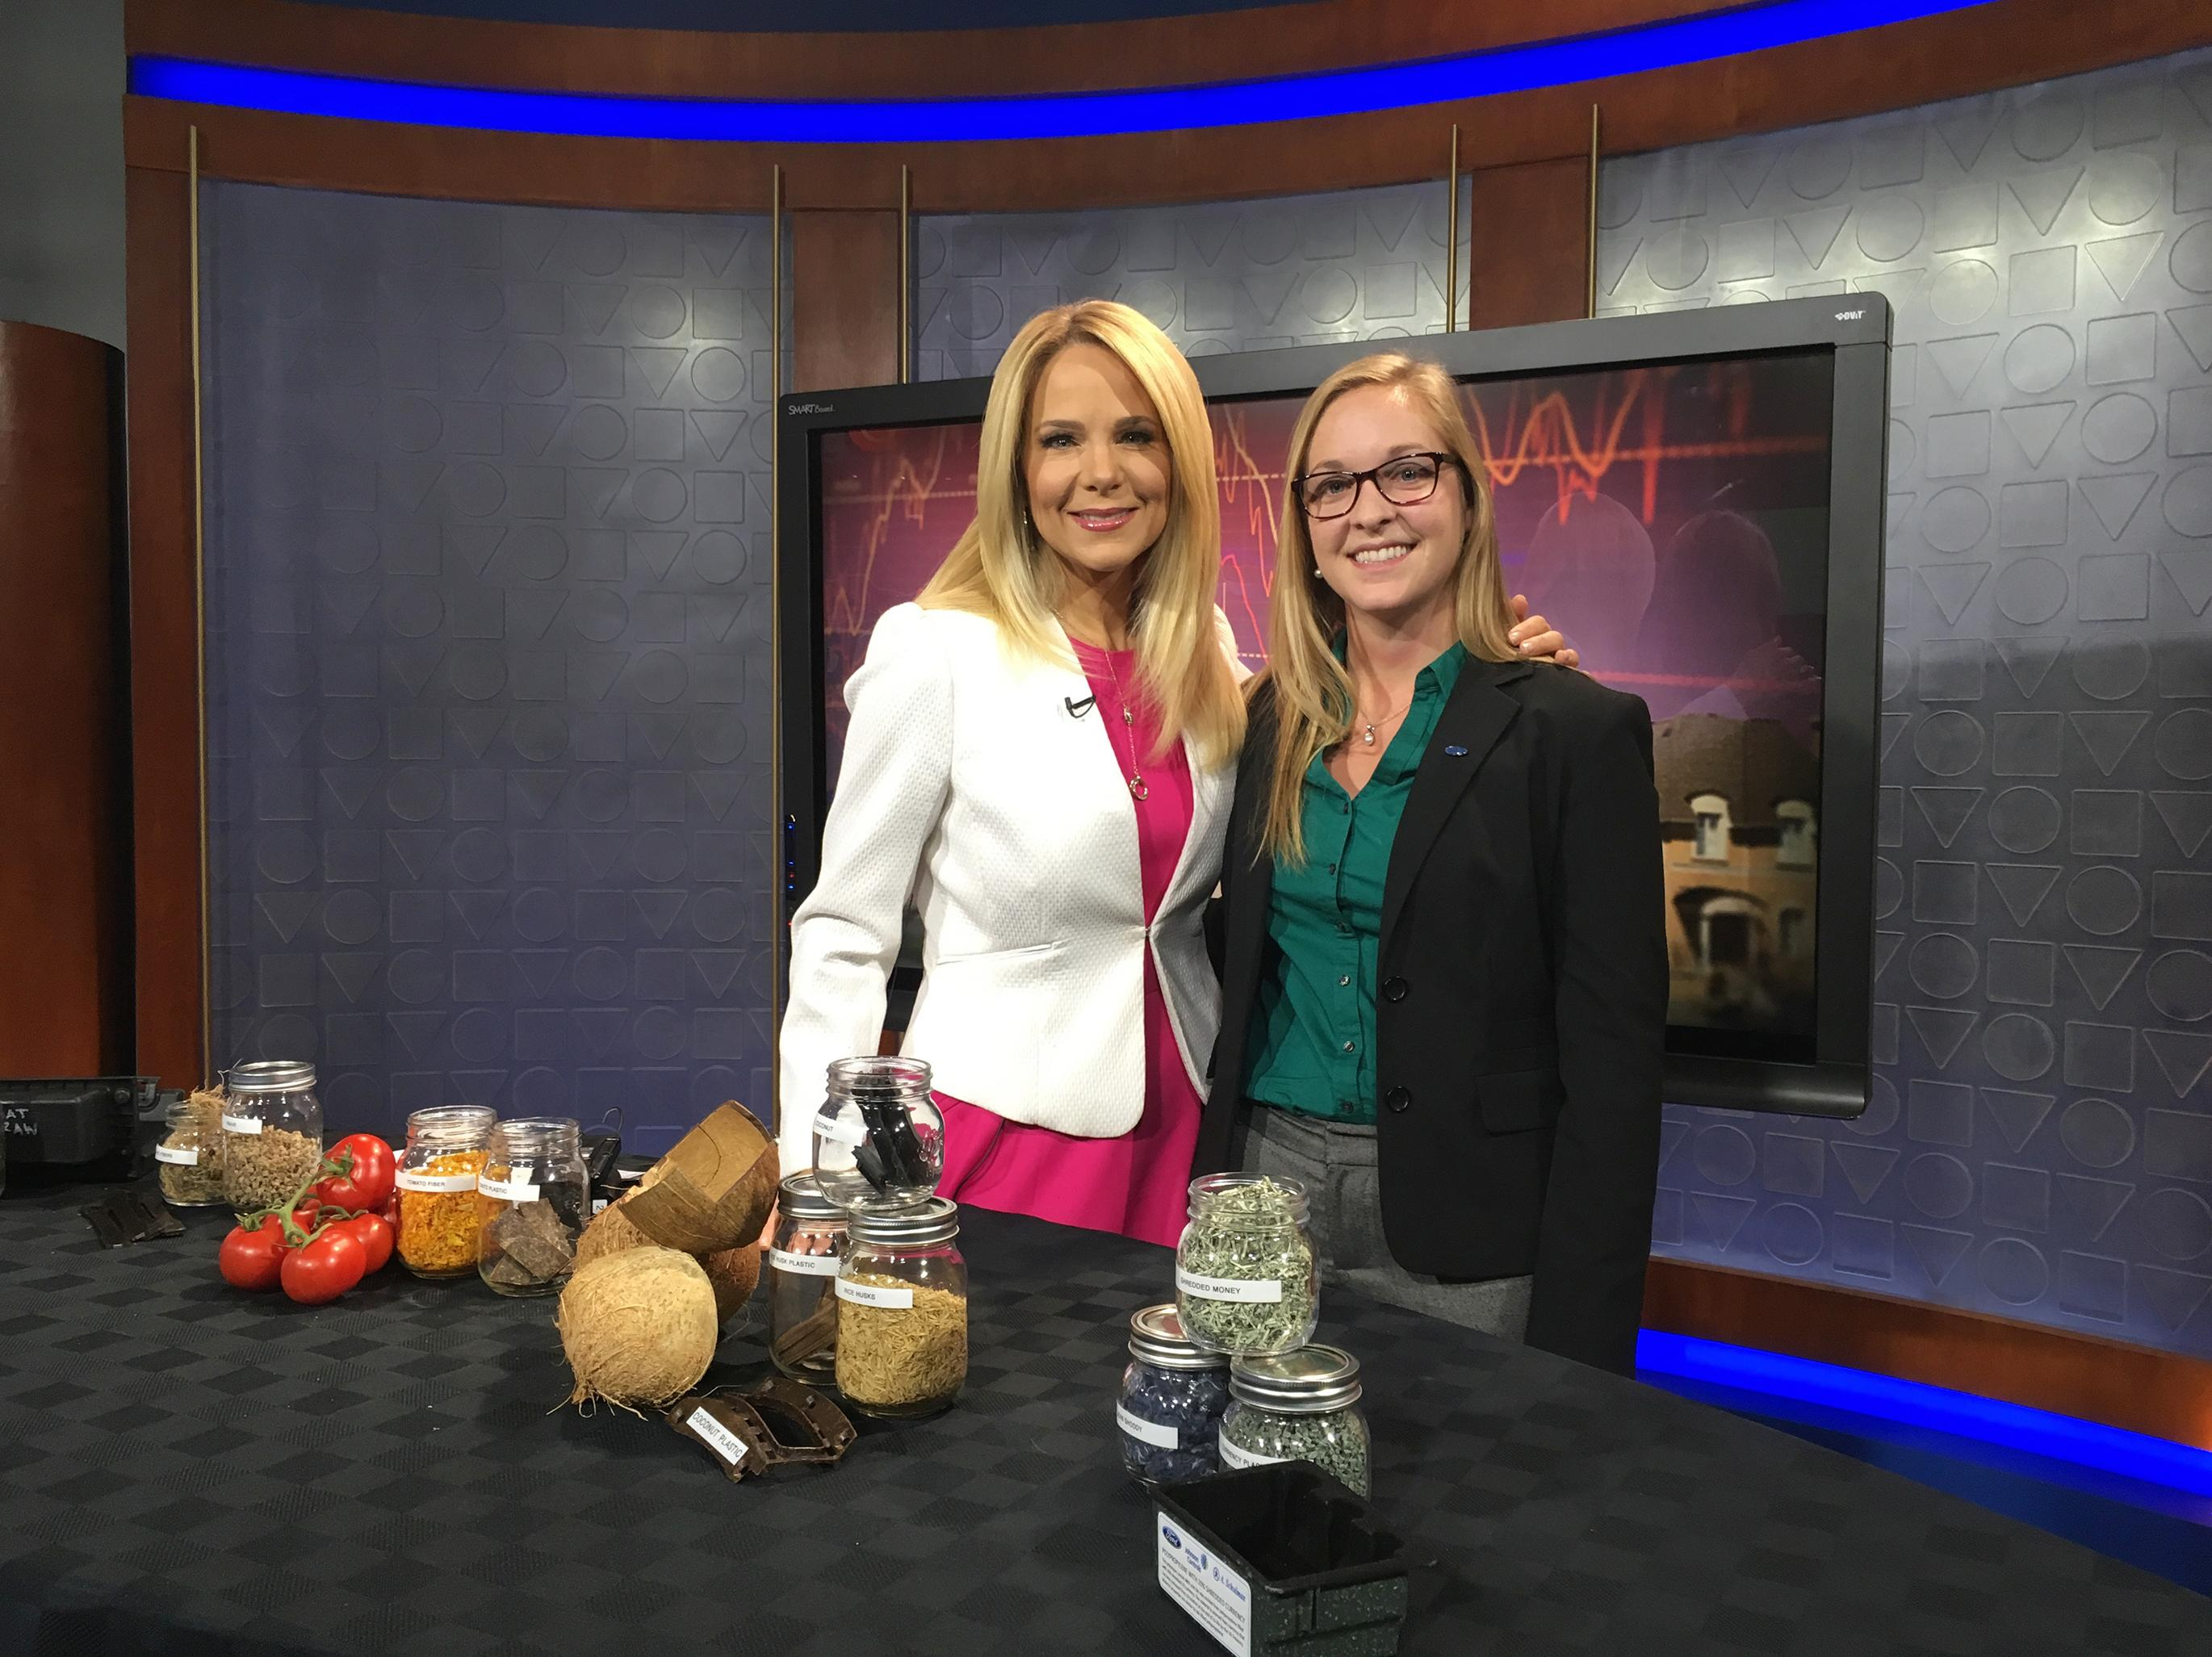 Mica Blauw on set with an Alberta, Canada television station where she was making a media appearance on behalf of Ford Motor Company.